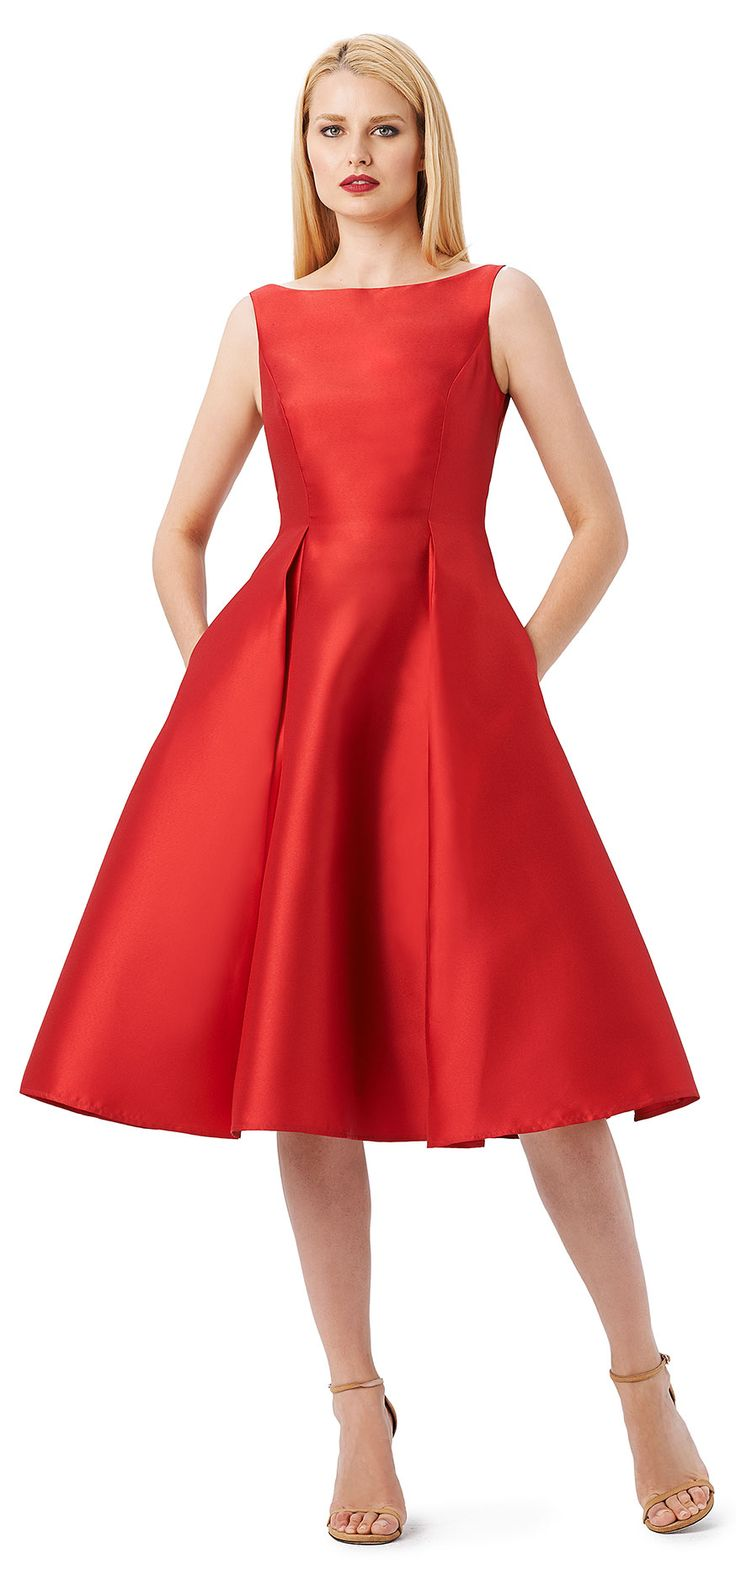 The 25 best red midi dress ideas on pinterest wedding for Red midi dress wedding guest